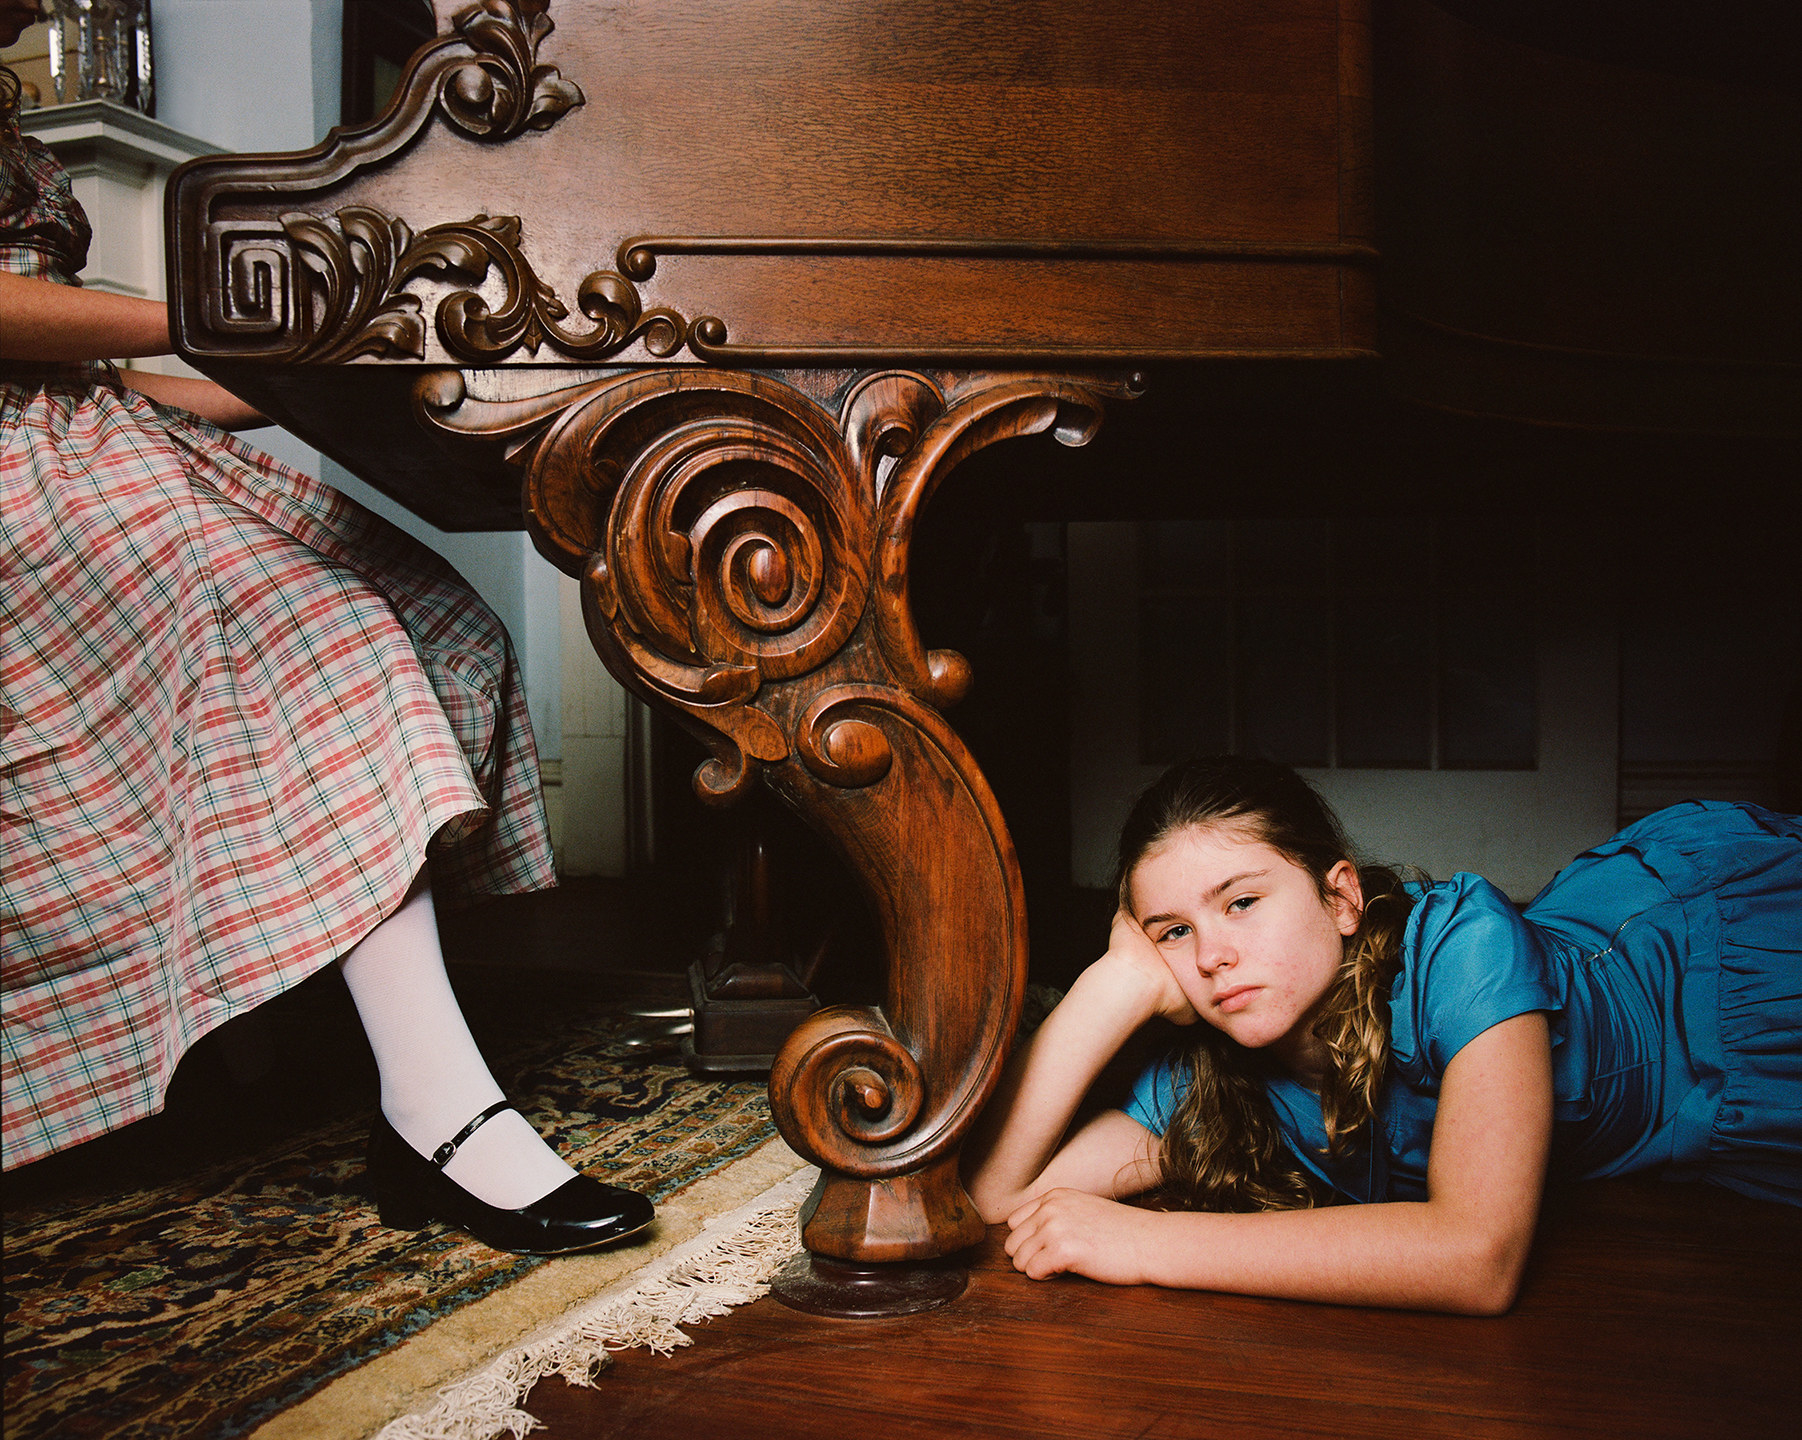 A young girl lies under a piano, and another girl is pictured from the waist down seated at the piano